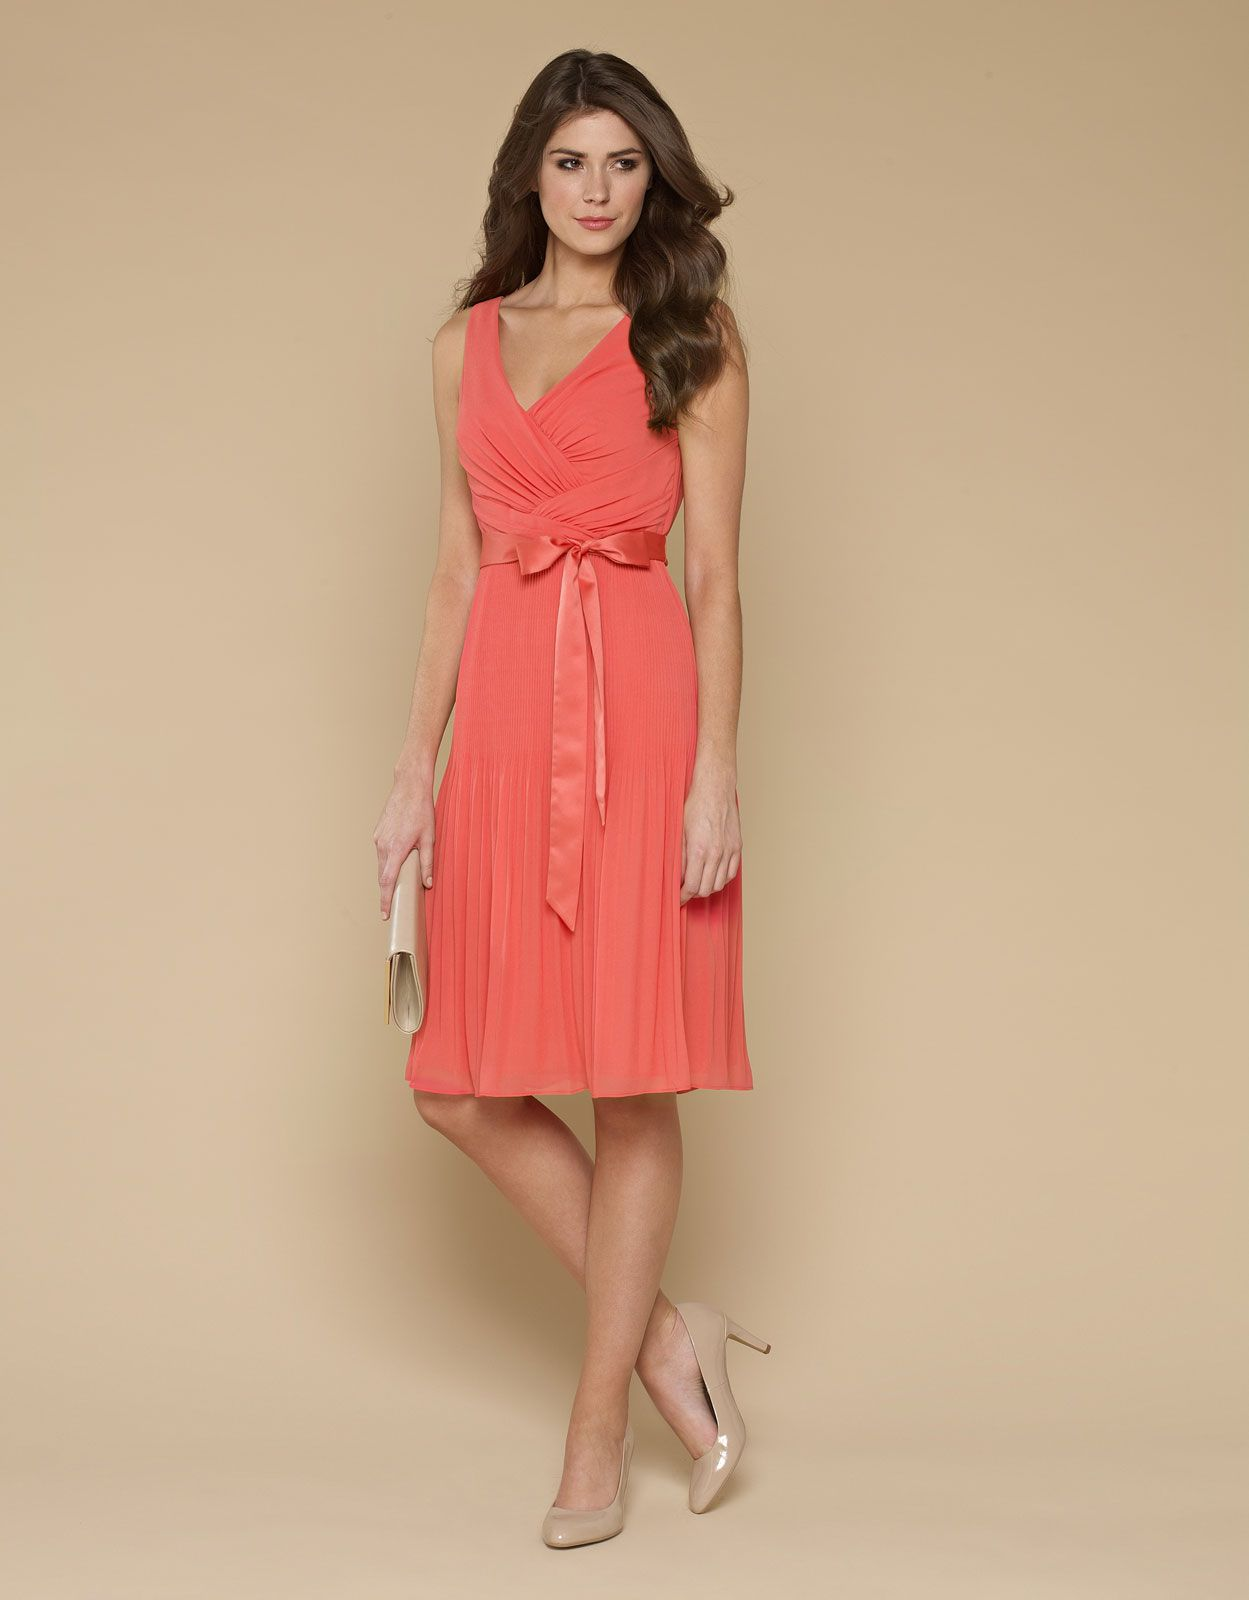 Coral Wedding Guest Dress - Dresses for Wedding Reception Check more ...